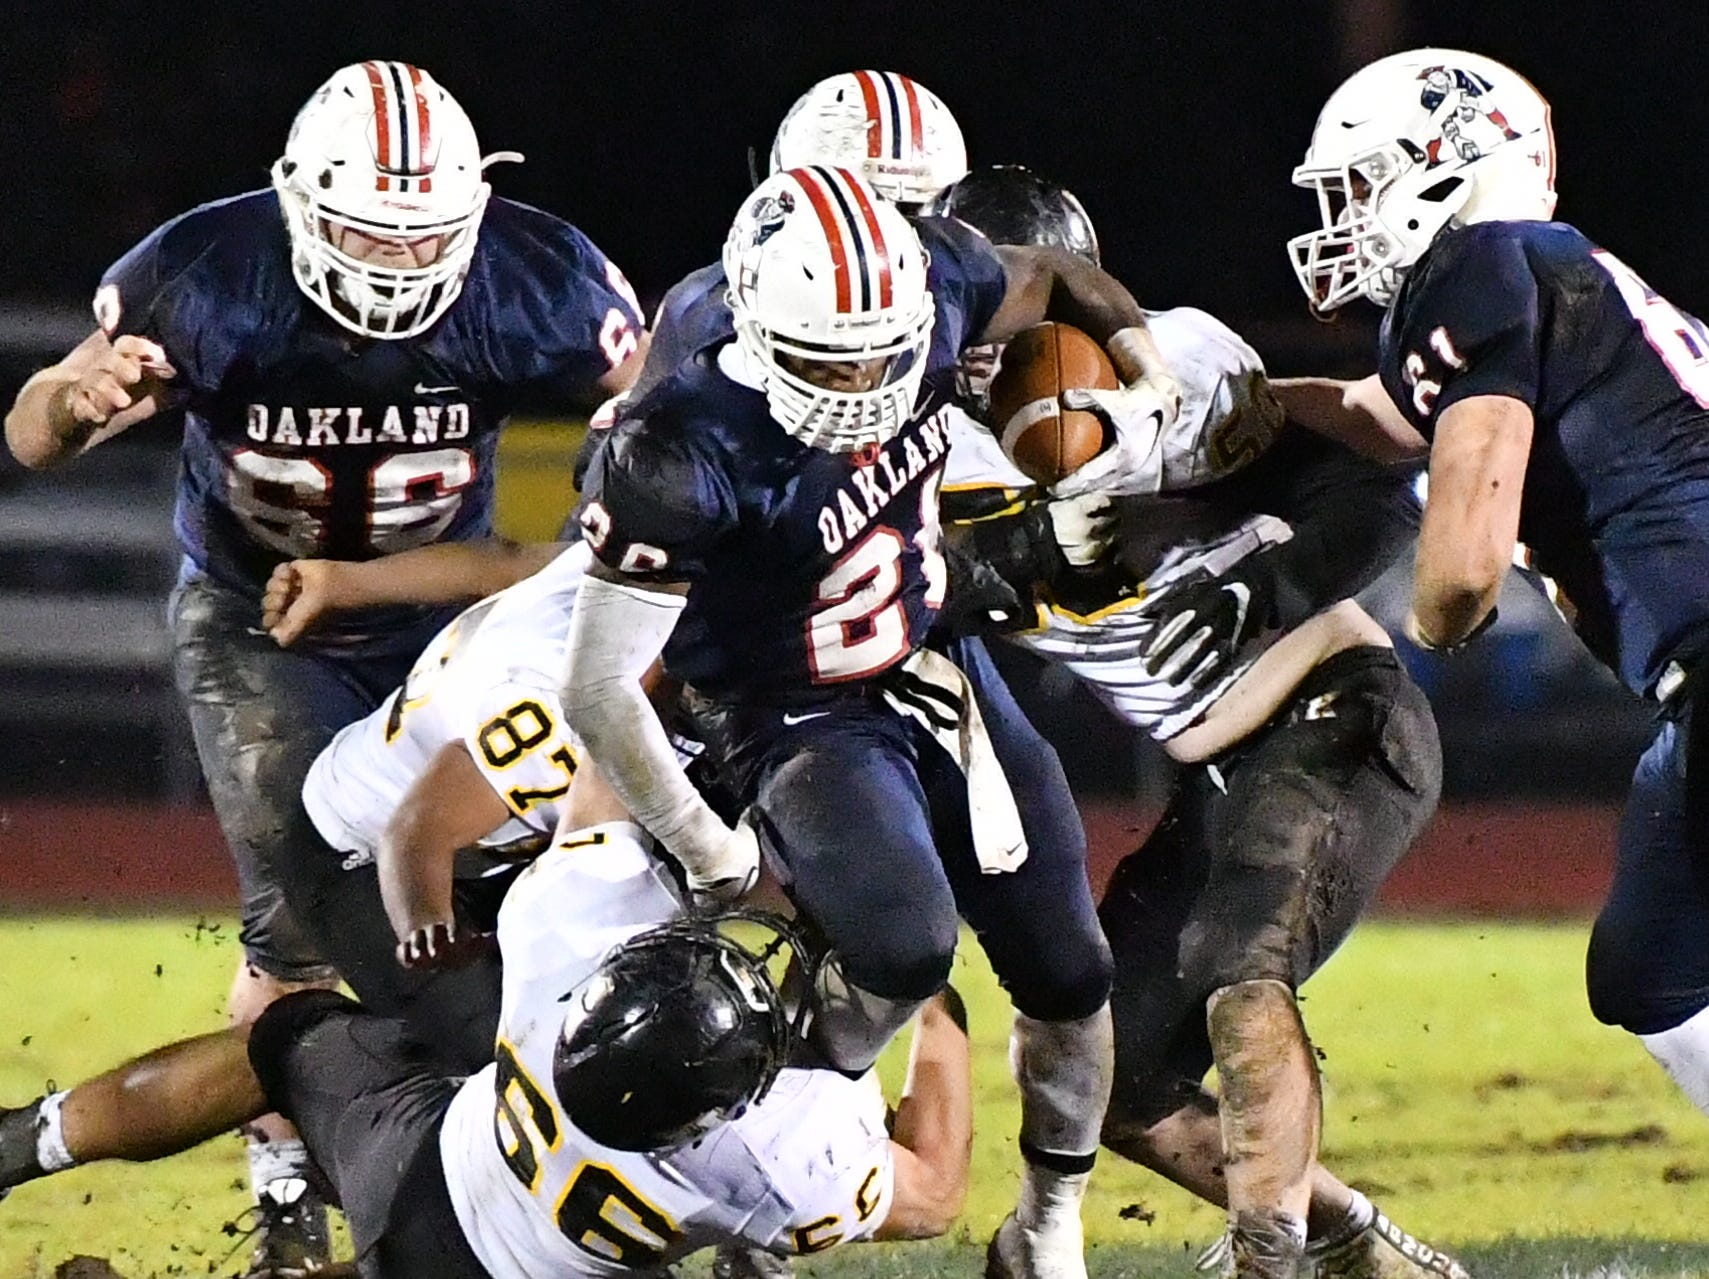 Oakland's Xavier Myers tries to break loose on a rush against Hendersonville Friday night.